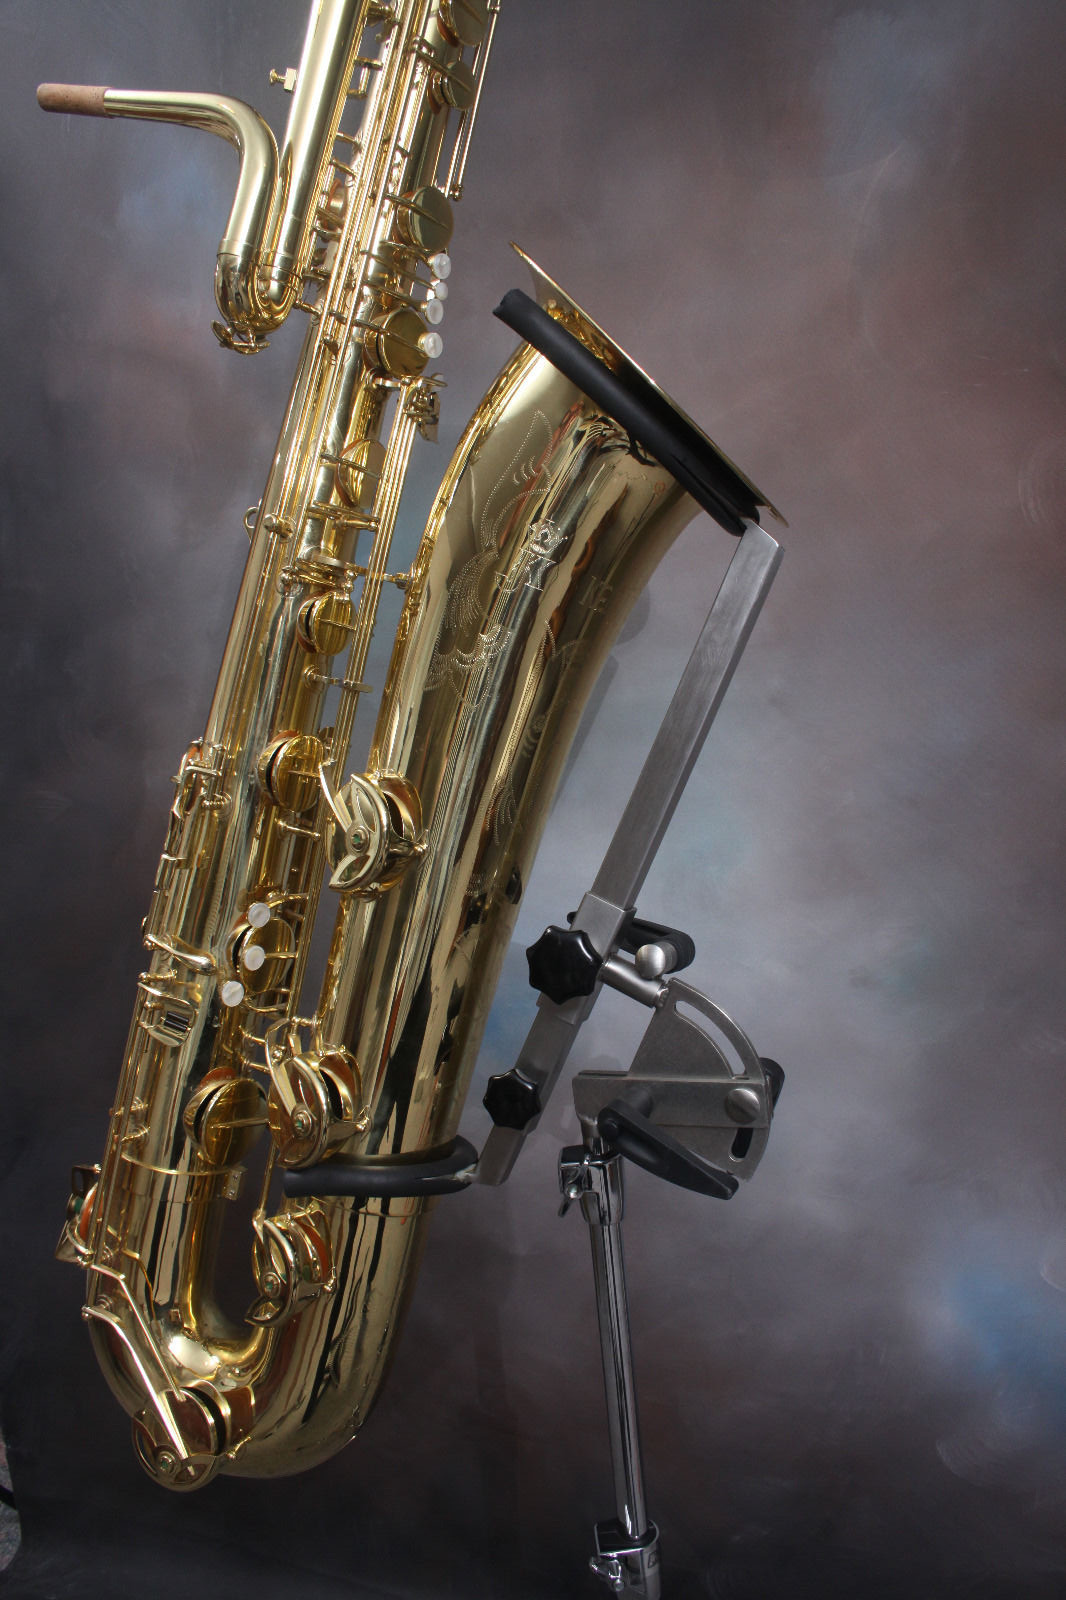 Ends In Hours: JK, SX 90 Bass Sax   The Bassic Sax Blog